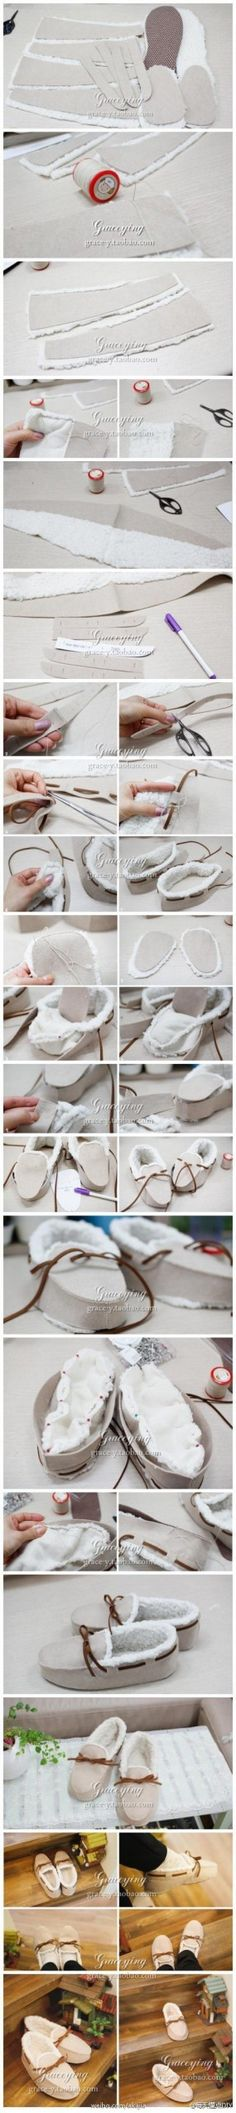 SaiFou – tutorial for moccasin slippers